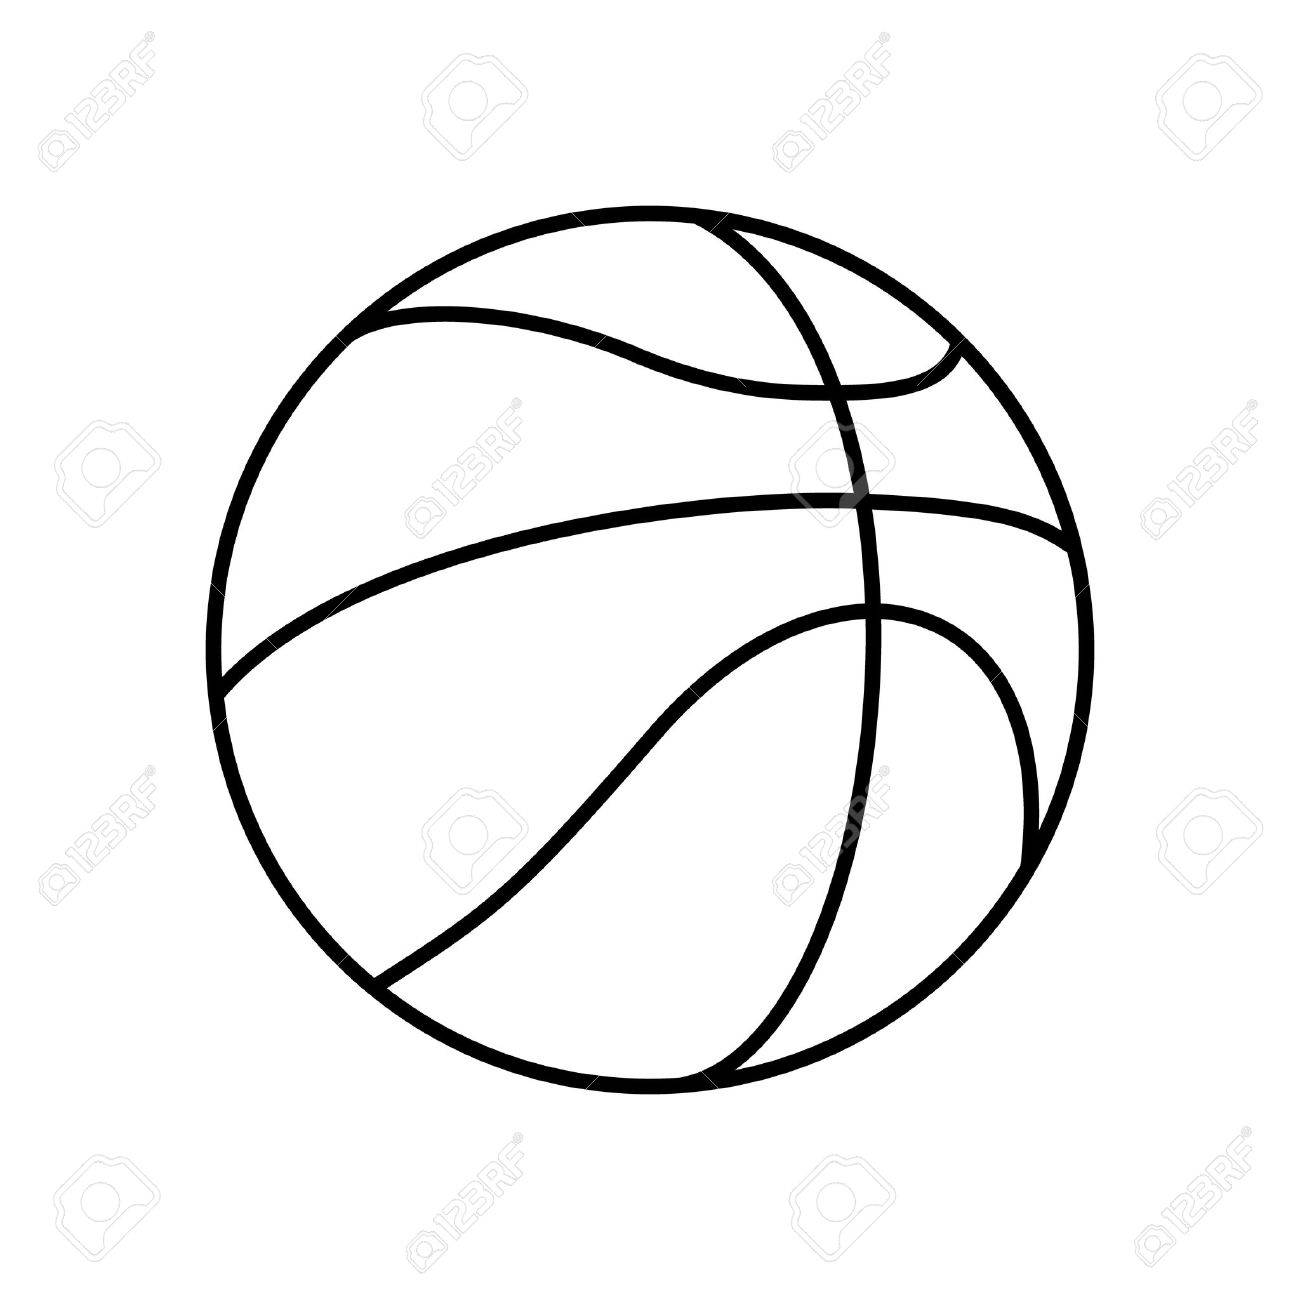 Basketball Ball Black And White Basketball Ball Outline Vector Icon Isolated